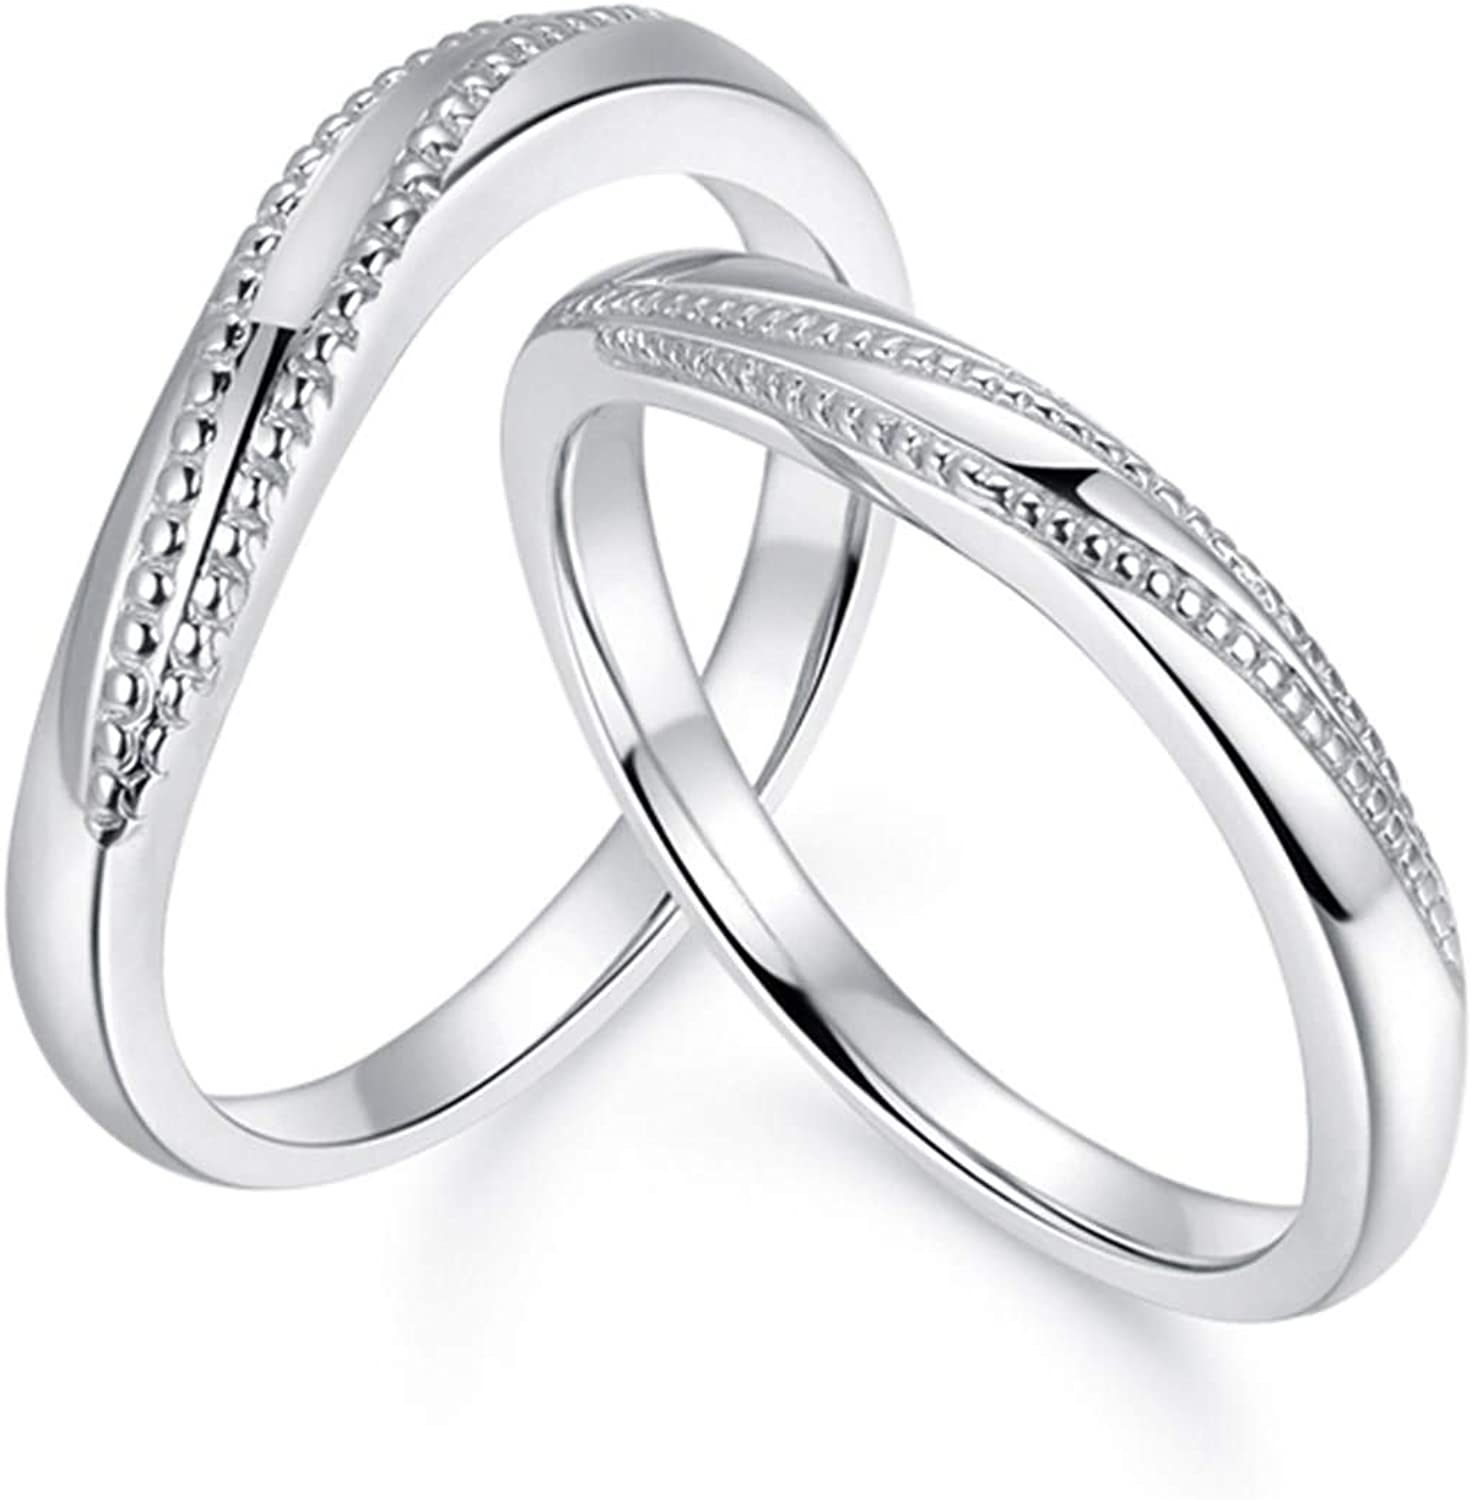 This is a photo of Aienid Platinum His and Her Rings Promise Ring Rivet Wedding Bands